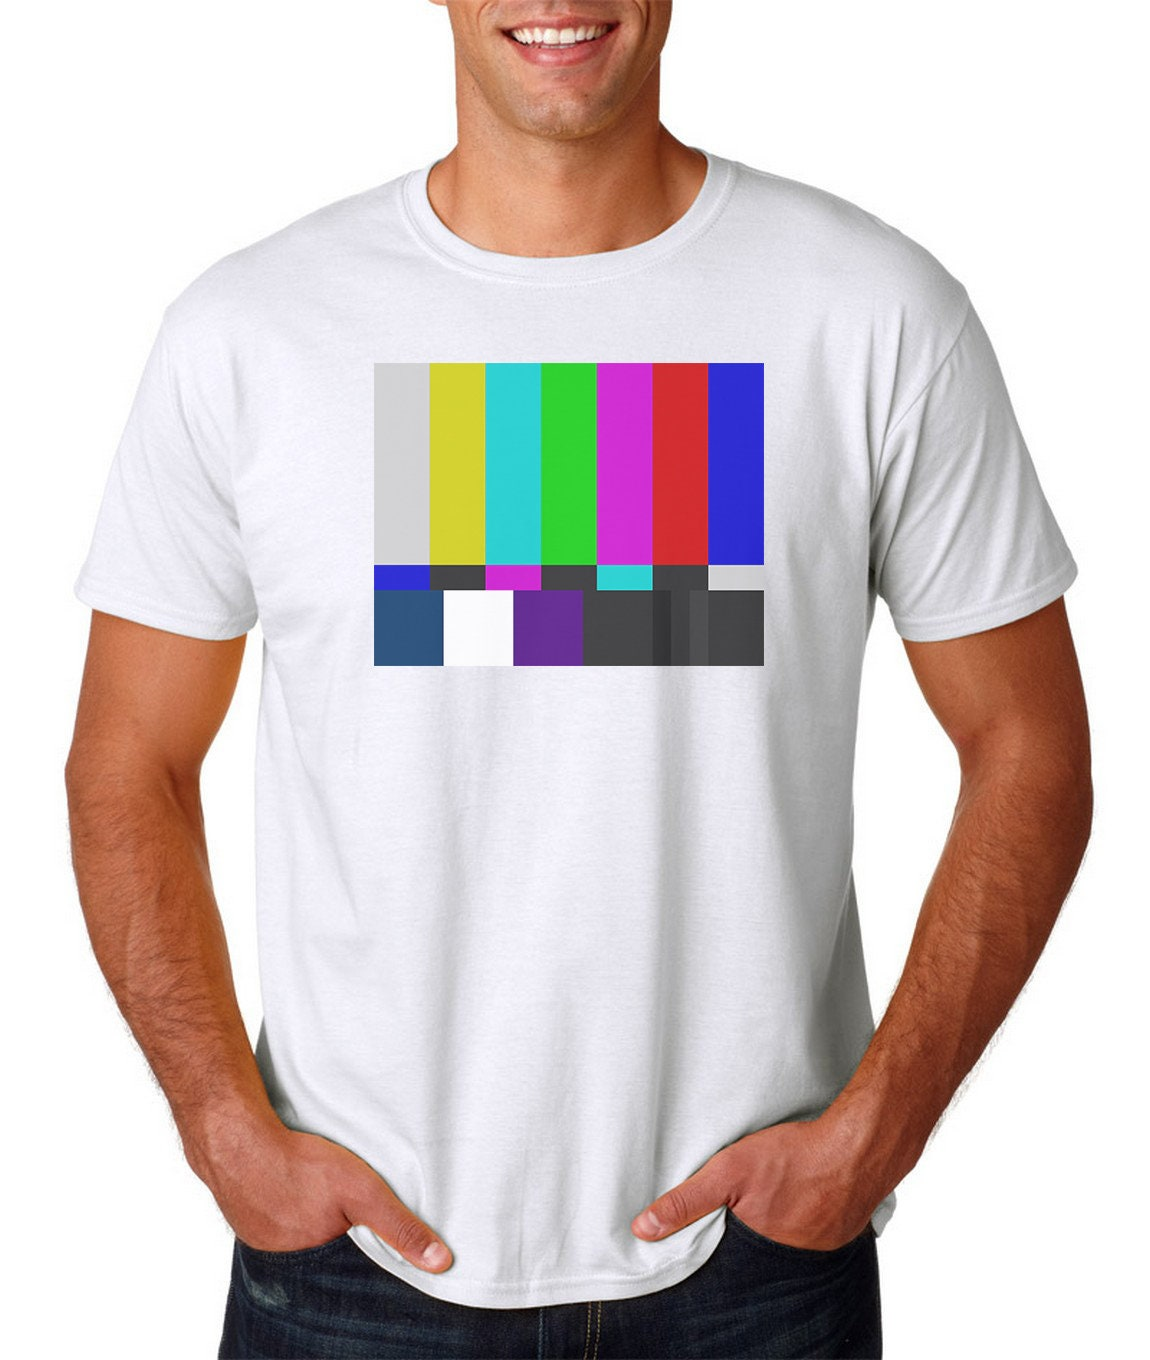 il_fullxfull.1512248064_eej2 tv color test pattern t shirt s 3xl television off air big etsy